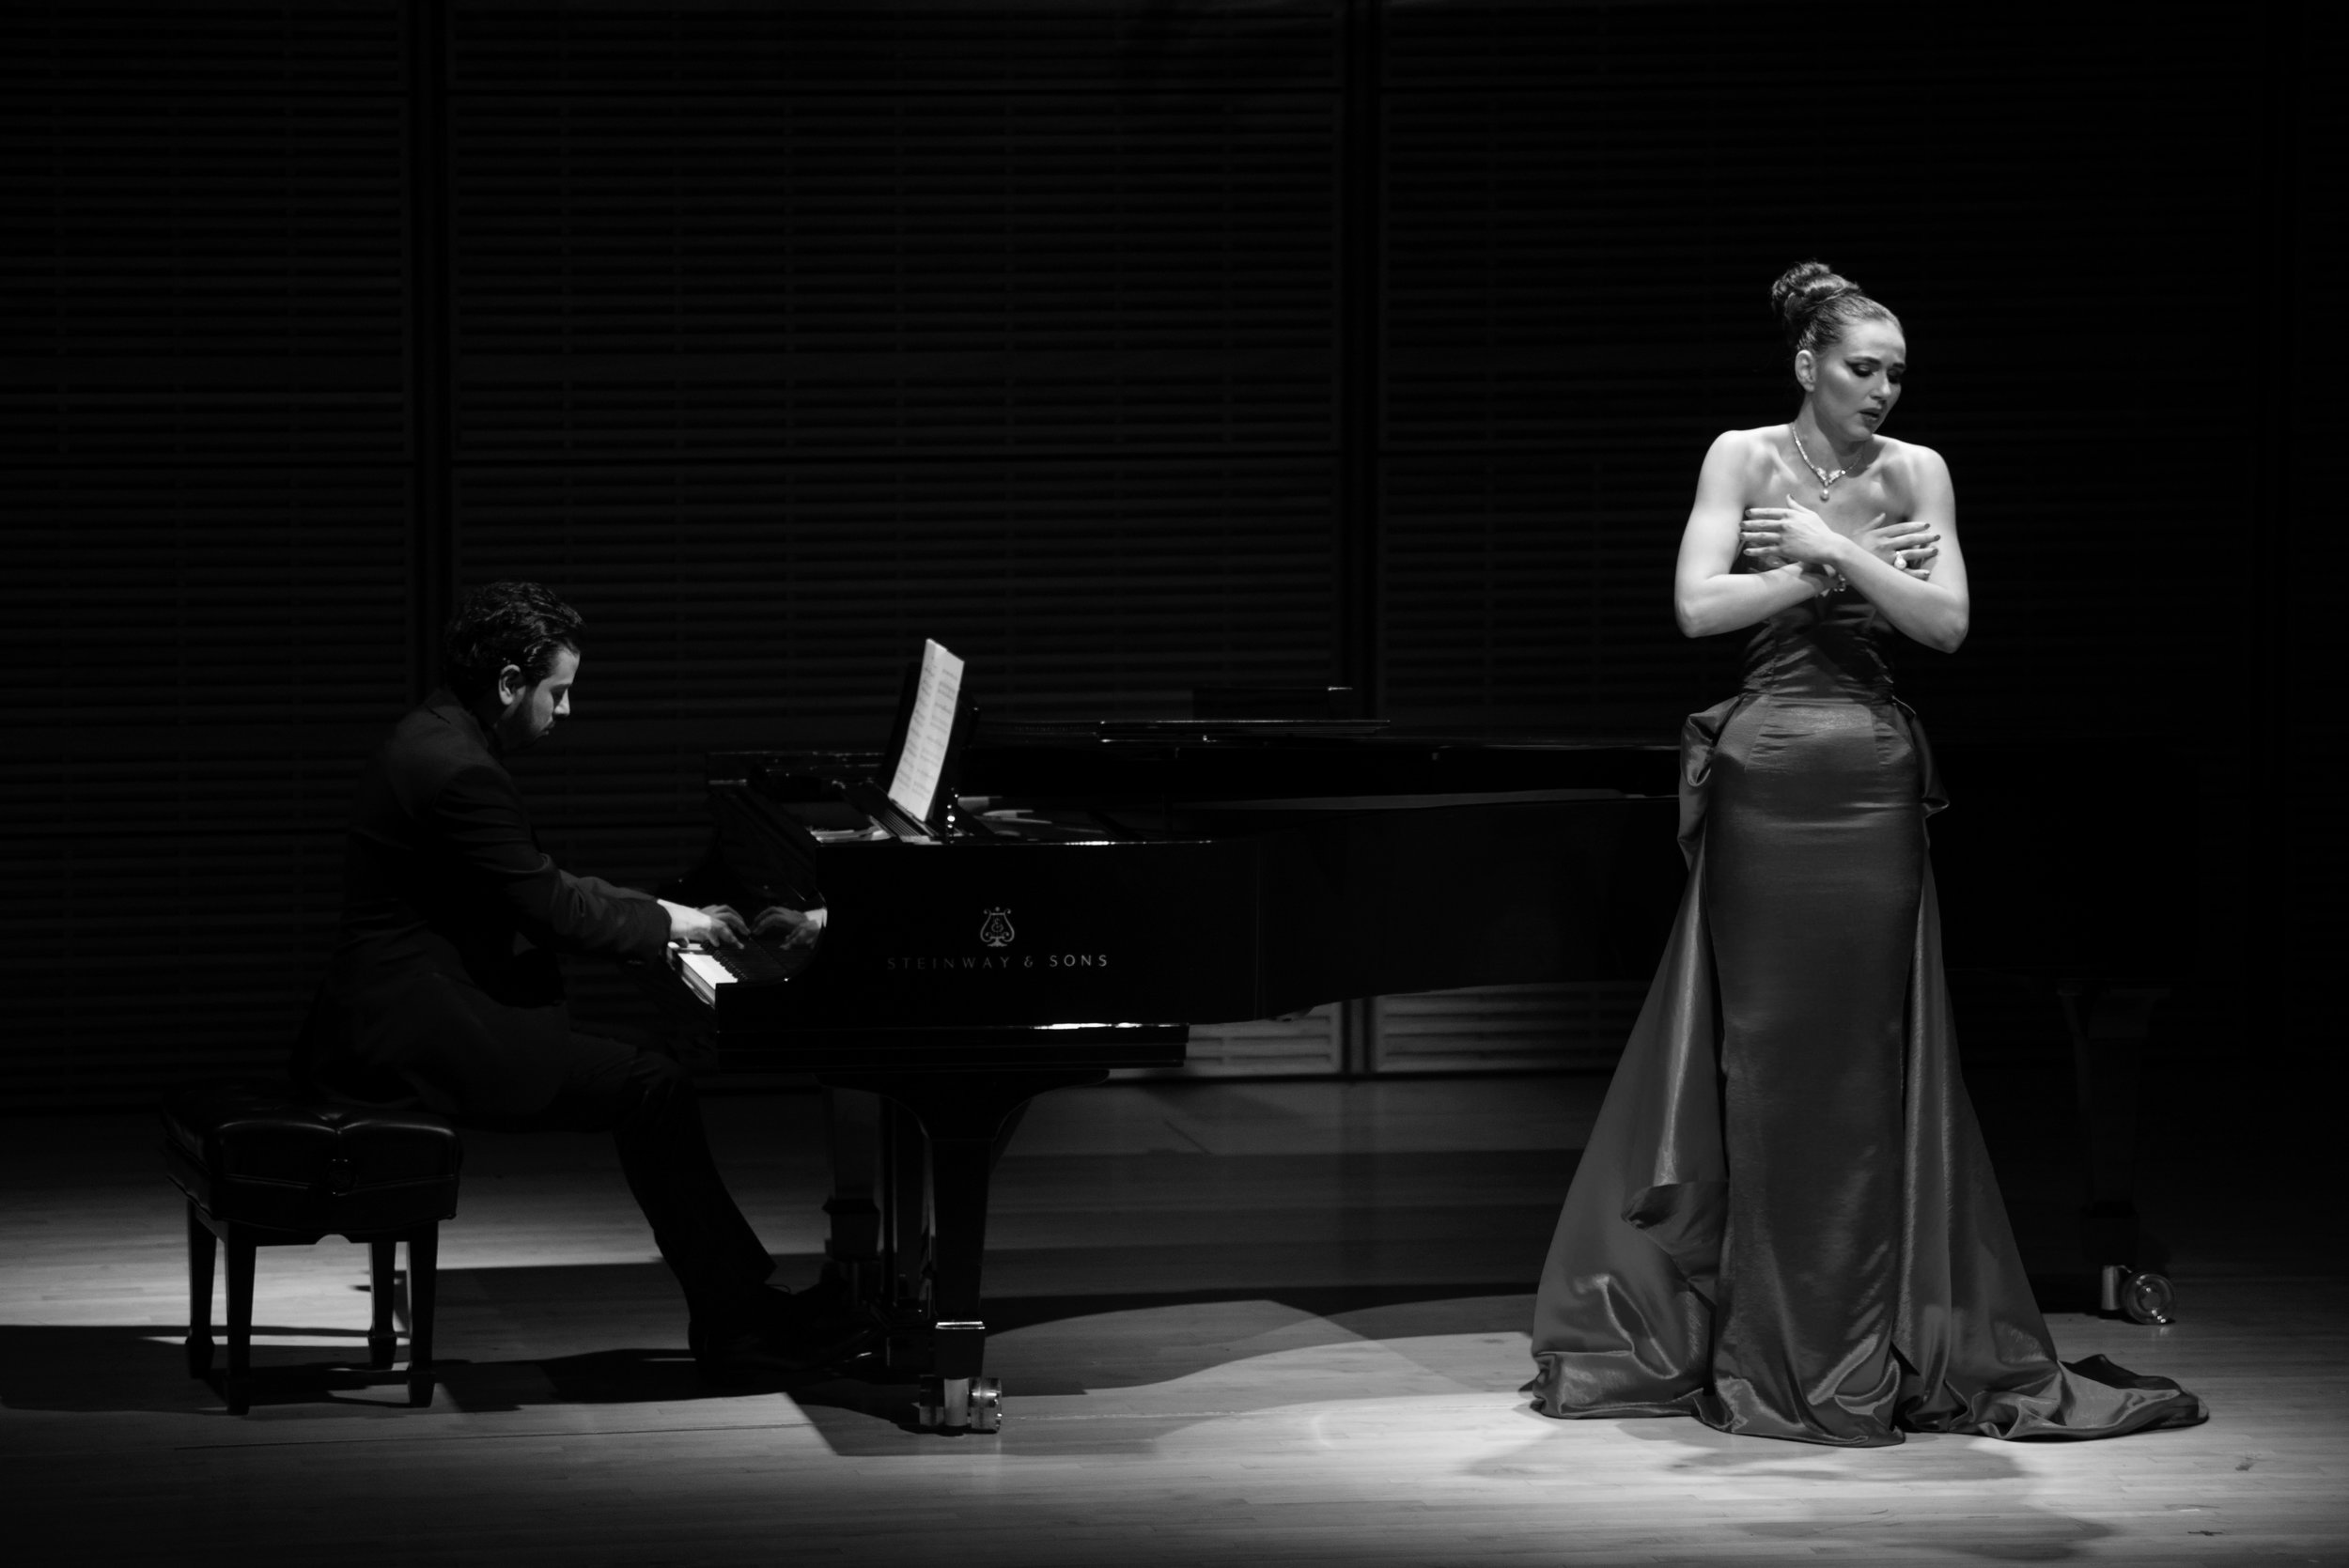 Radmila Lolly closed the concert singing  Gesegnete Dunkelheit  with composer De La Chica on piano Photo by Eugene Manning